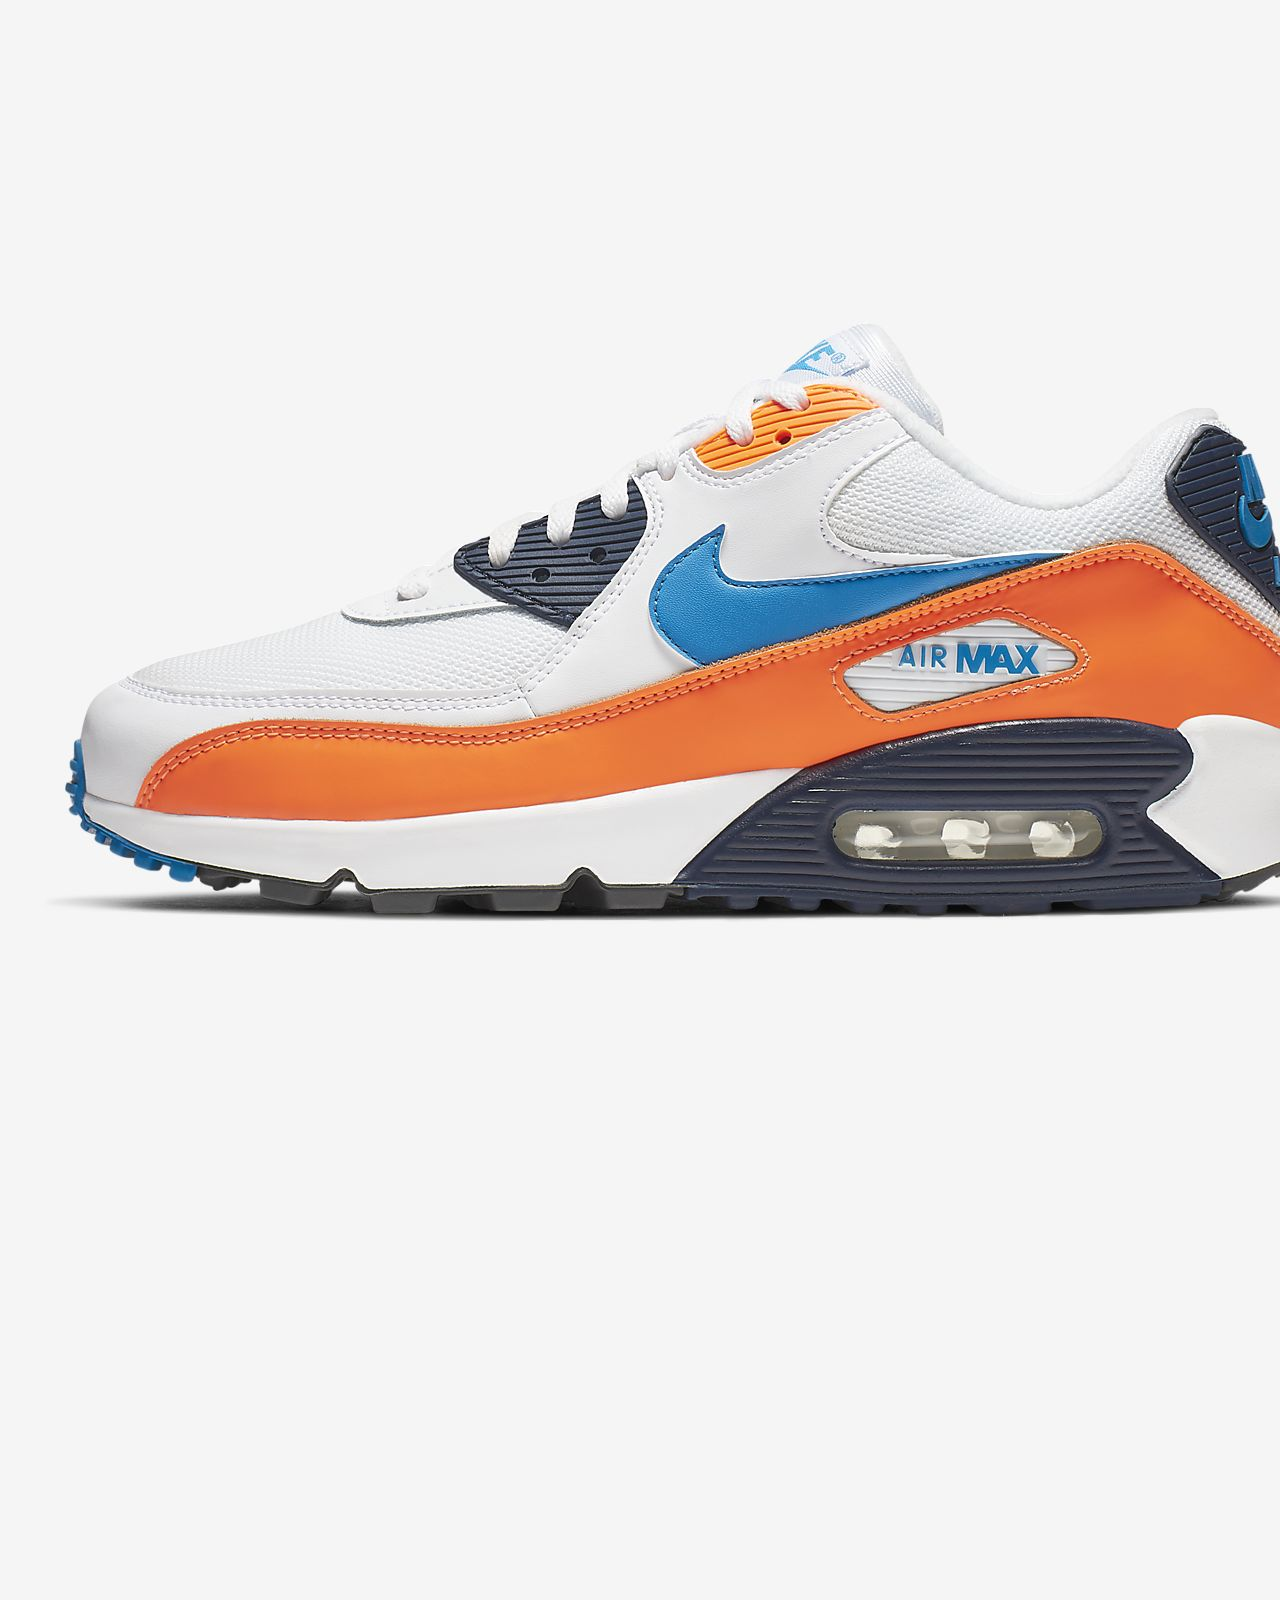 separation shoes 6c7a9 3fd96 ... Nike Air Max 90 Essential Men s Shoe